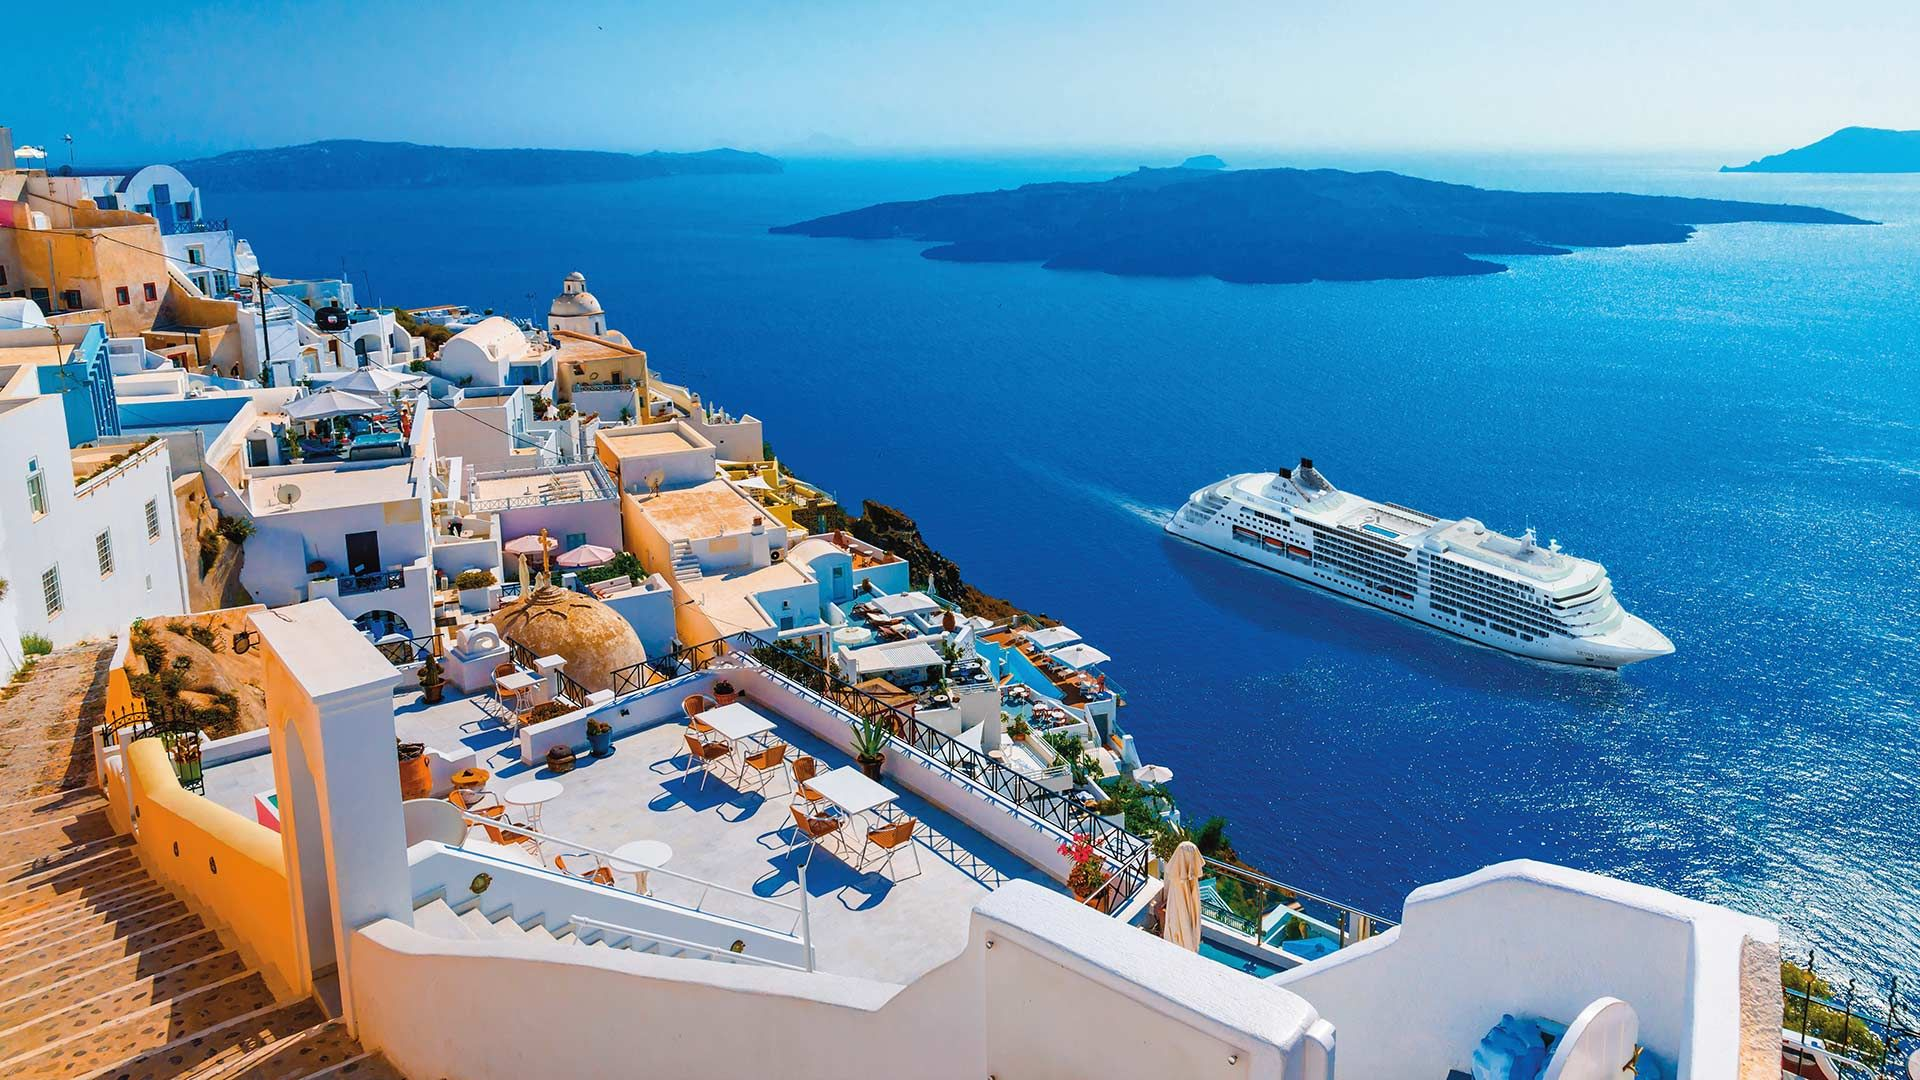 Santorini download free wallpapers for pc in hd